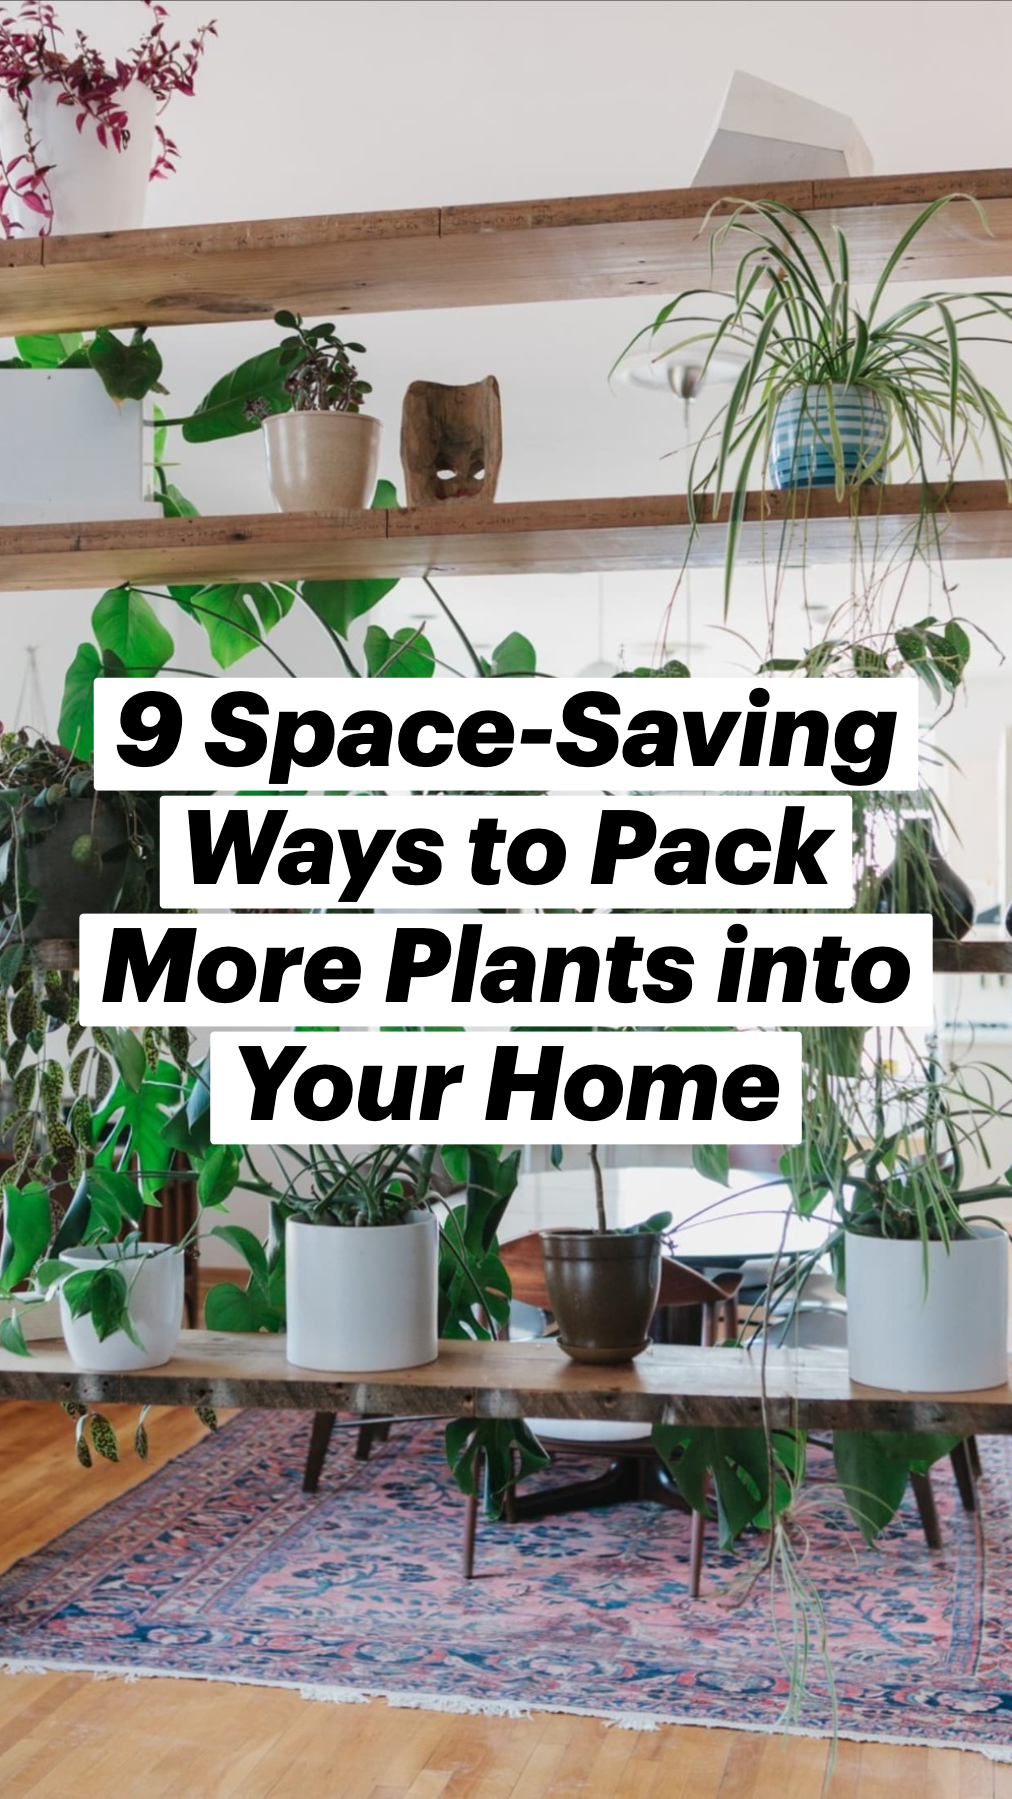 9 Space-Saving Ways to Pack More Plants into Your Home